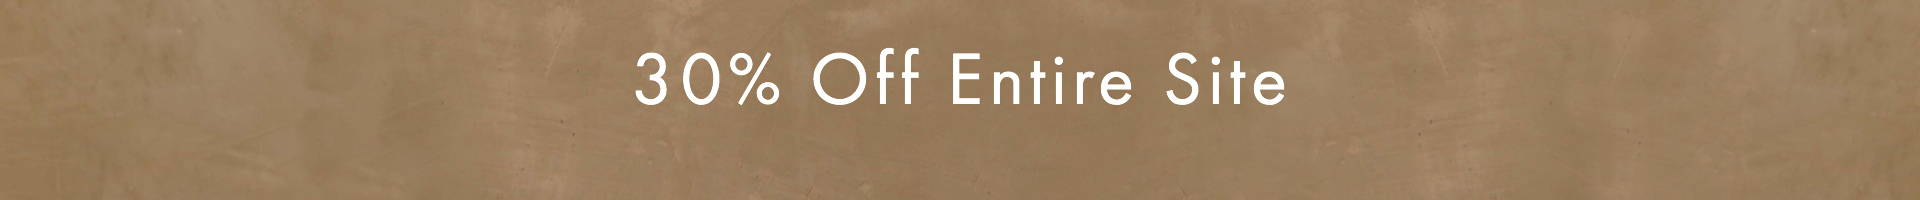 a brown banner showing 30% off entire site